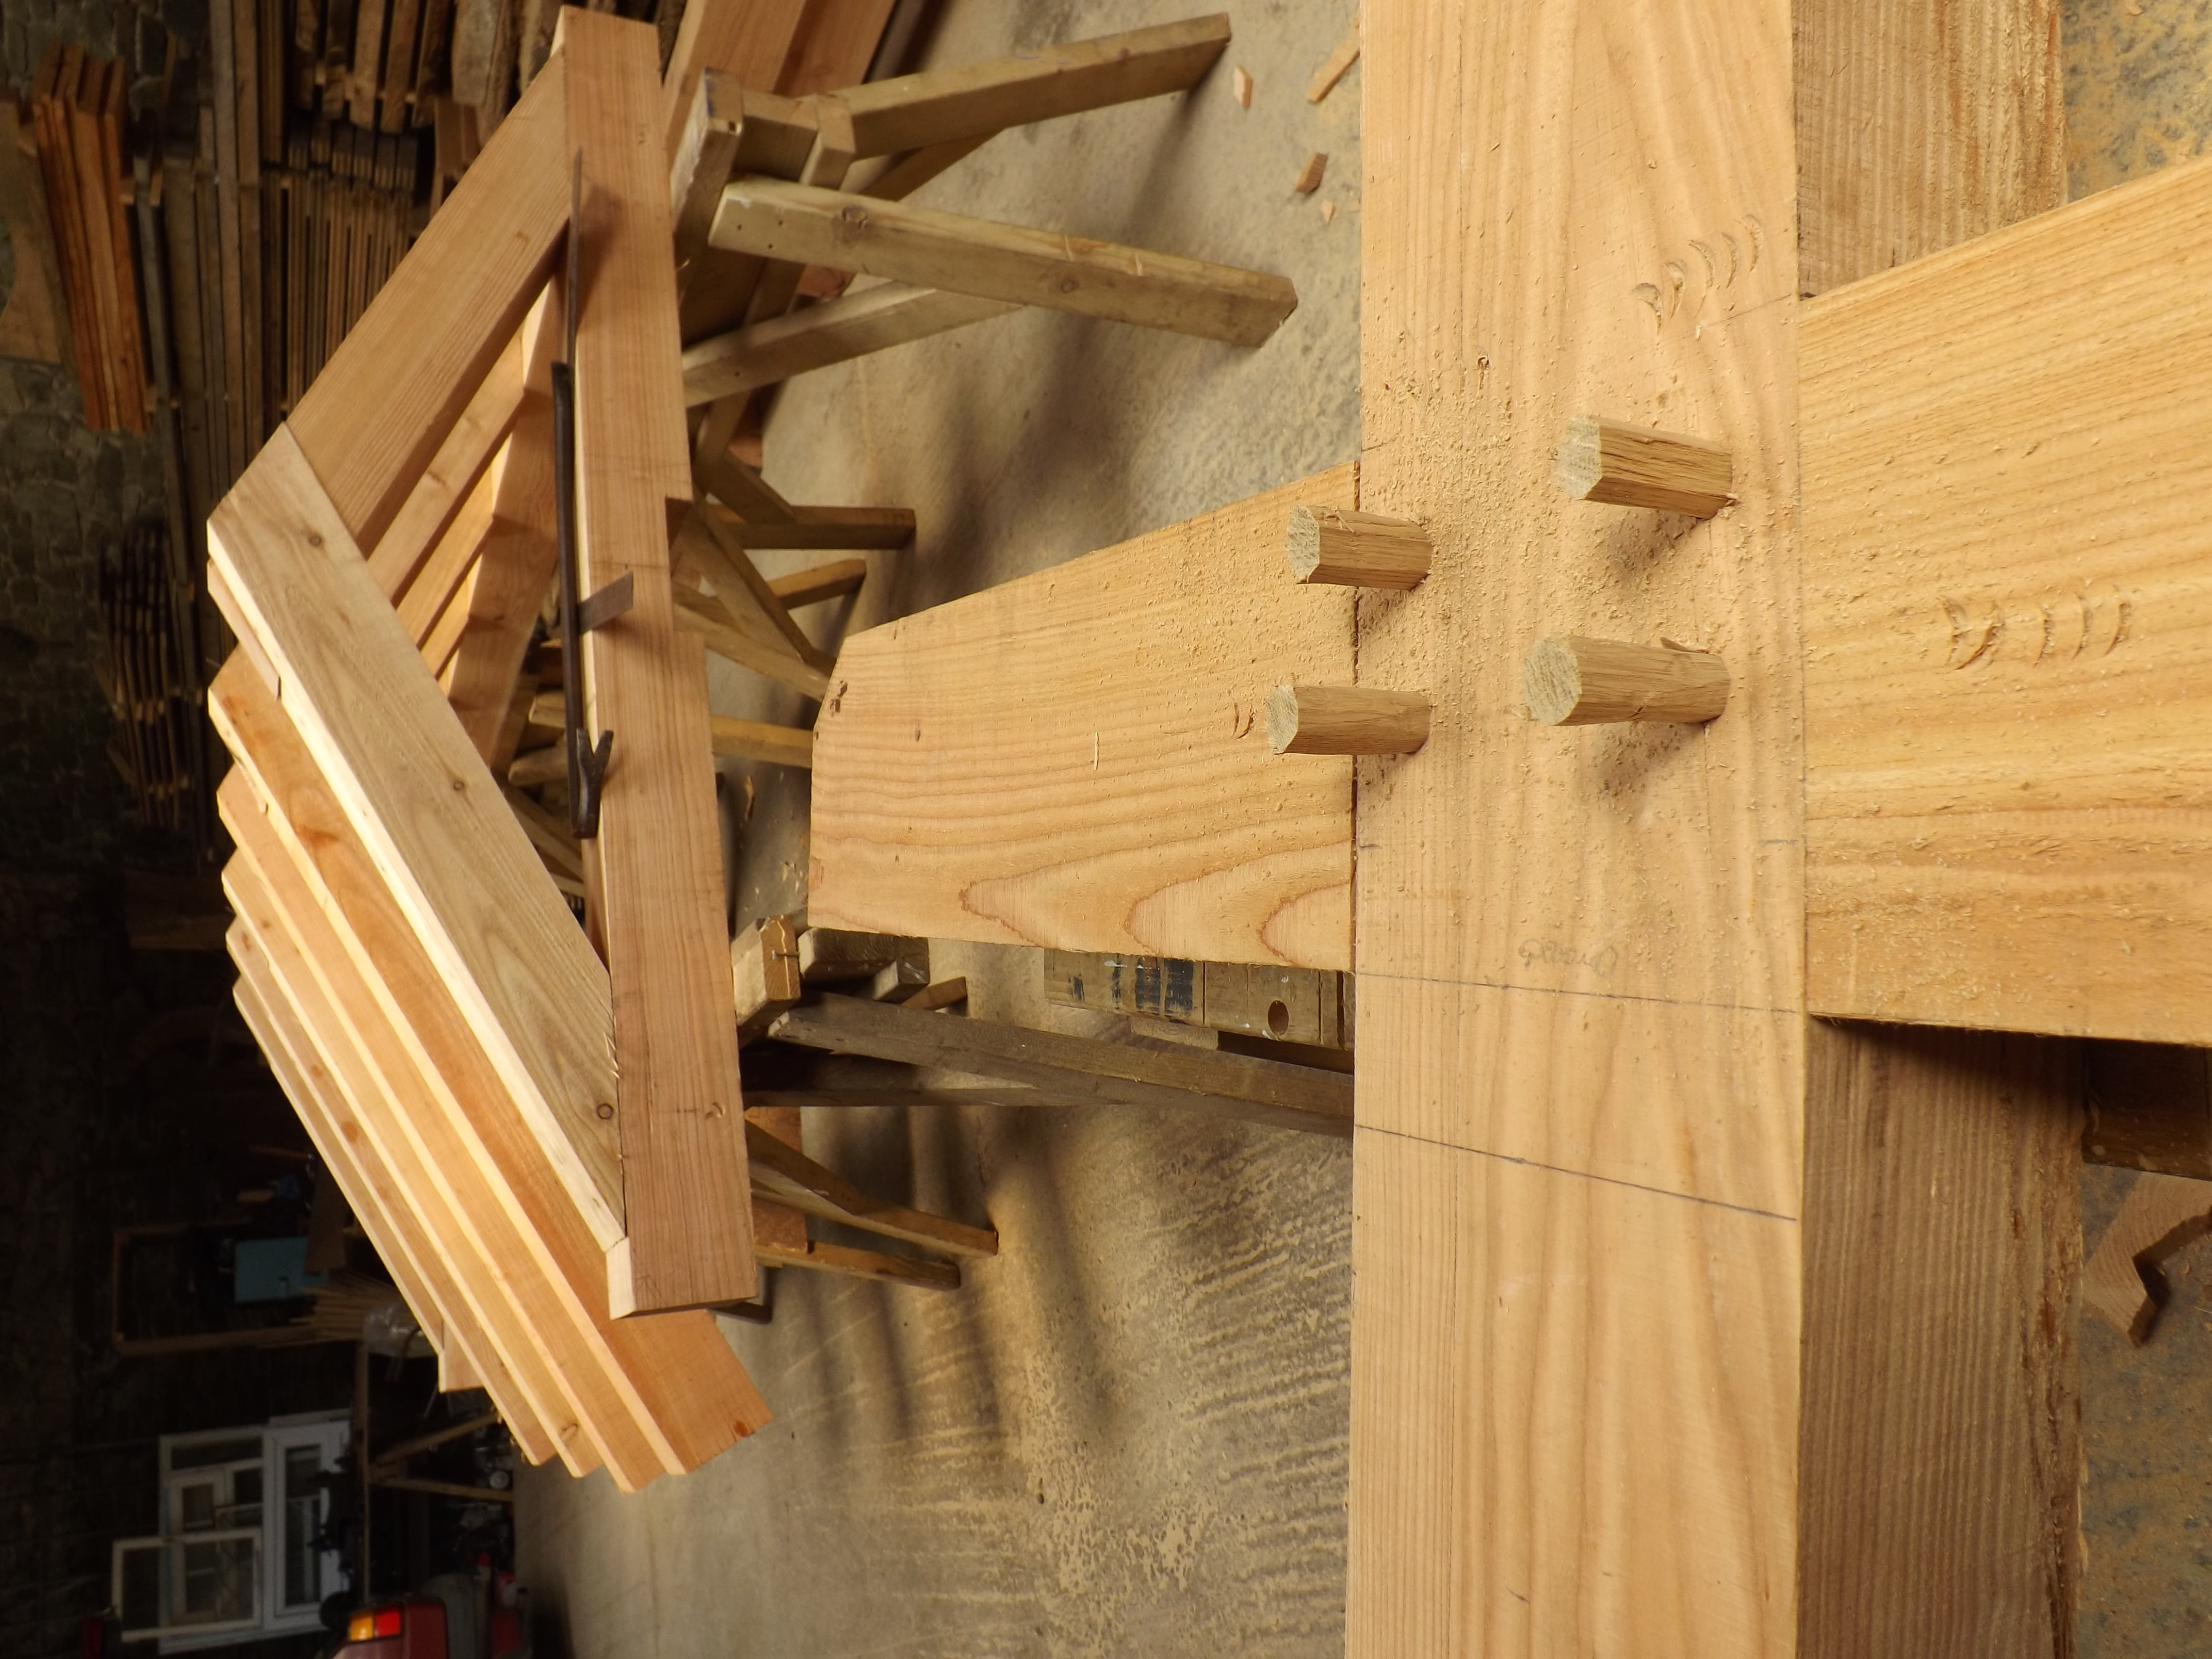 Drawbore Mortice and Tenon